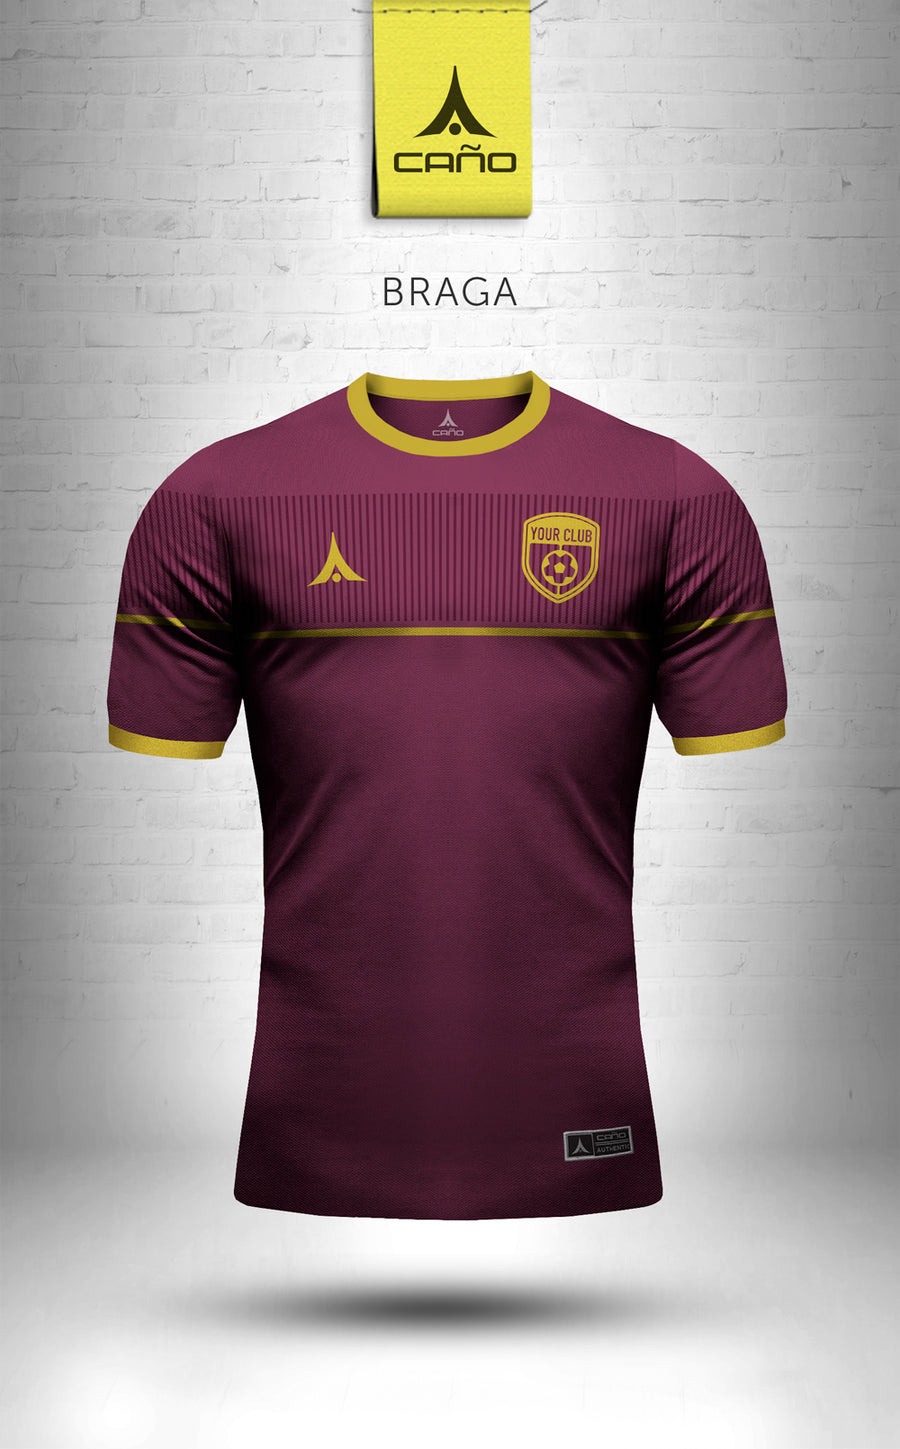 Braga in maroon/gold